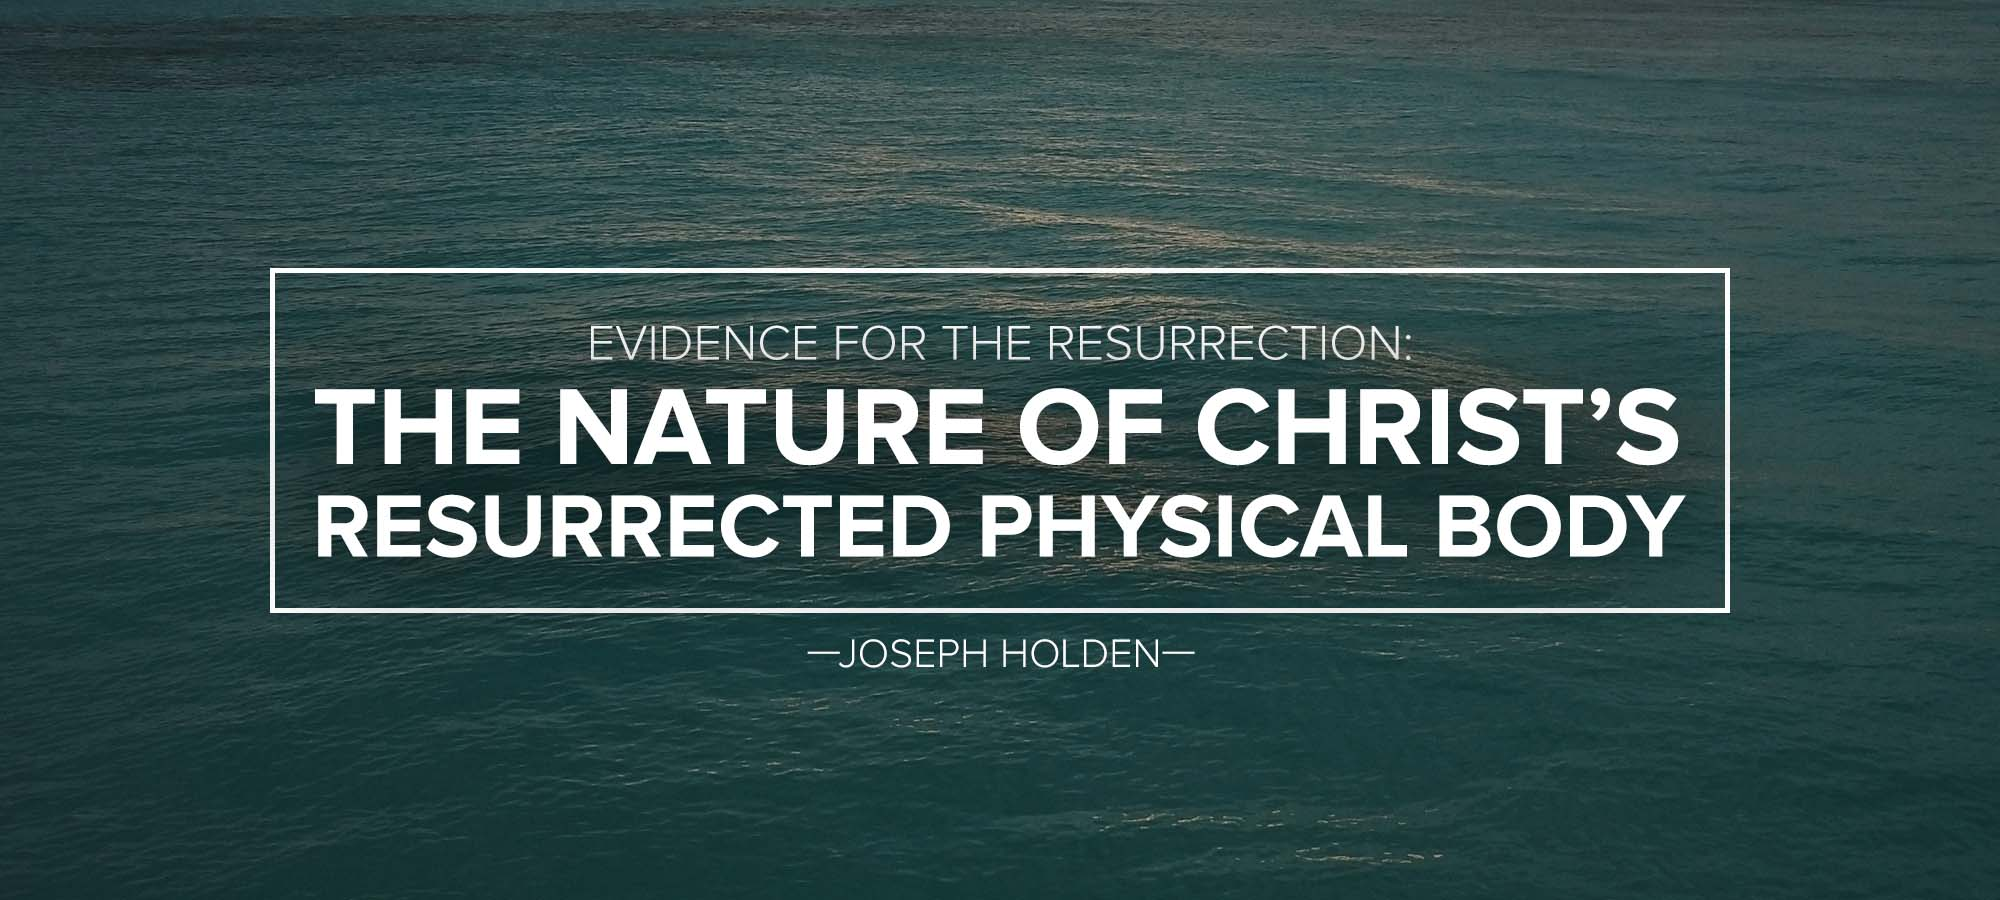 Evidence	for the Resurrection: The Nature of Christ's Resurrected Physical Body